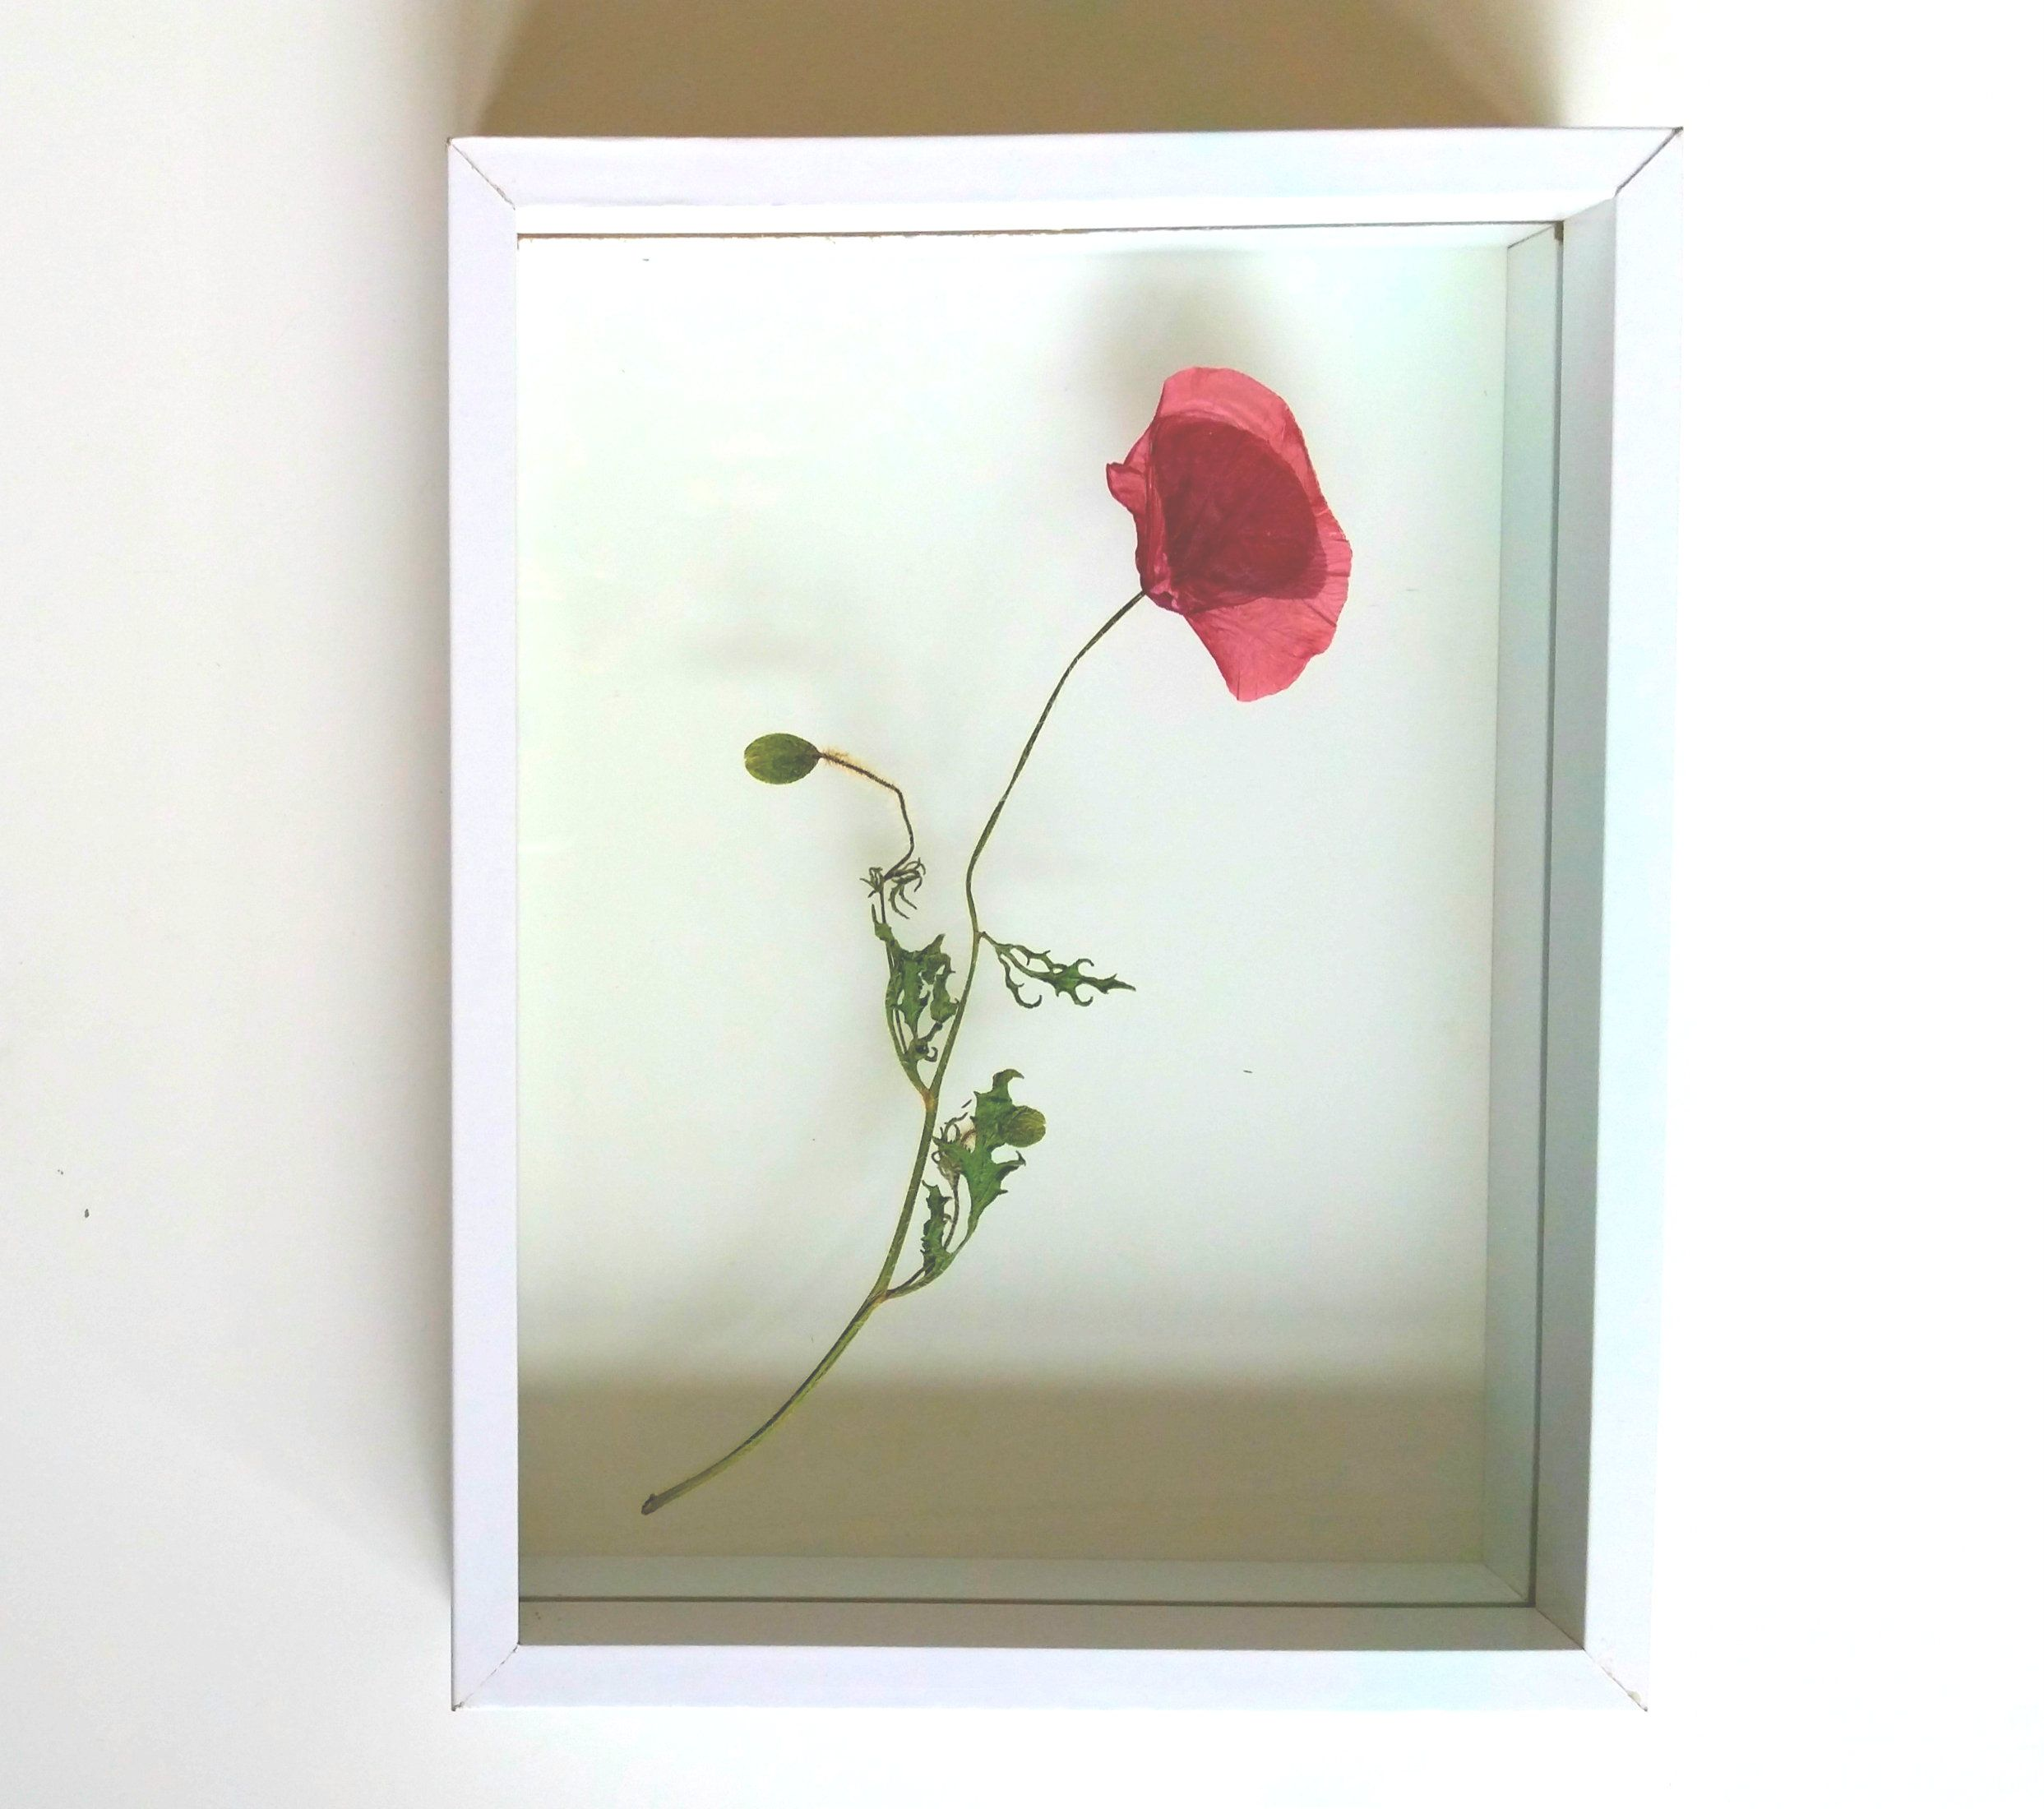 Dried Poppy Flower Floating In White Frame Gedroogde Klaproos